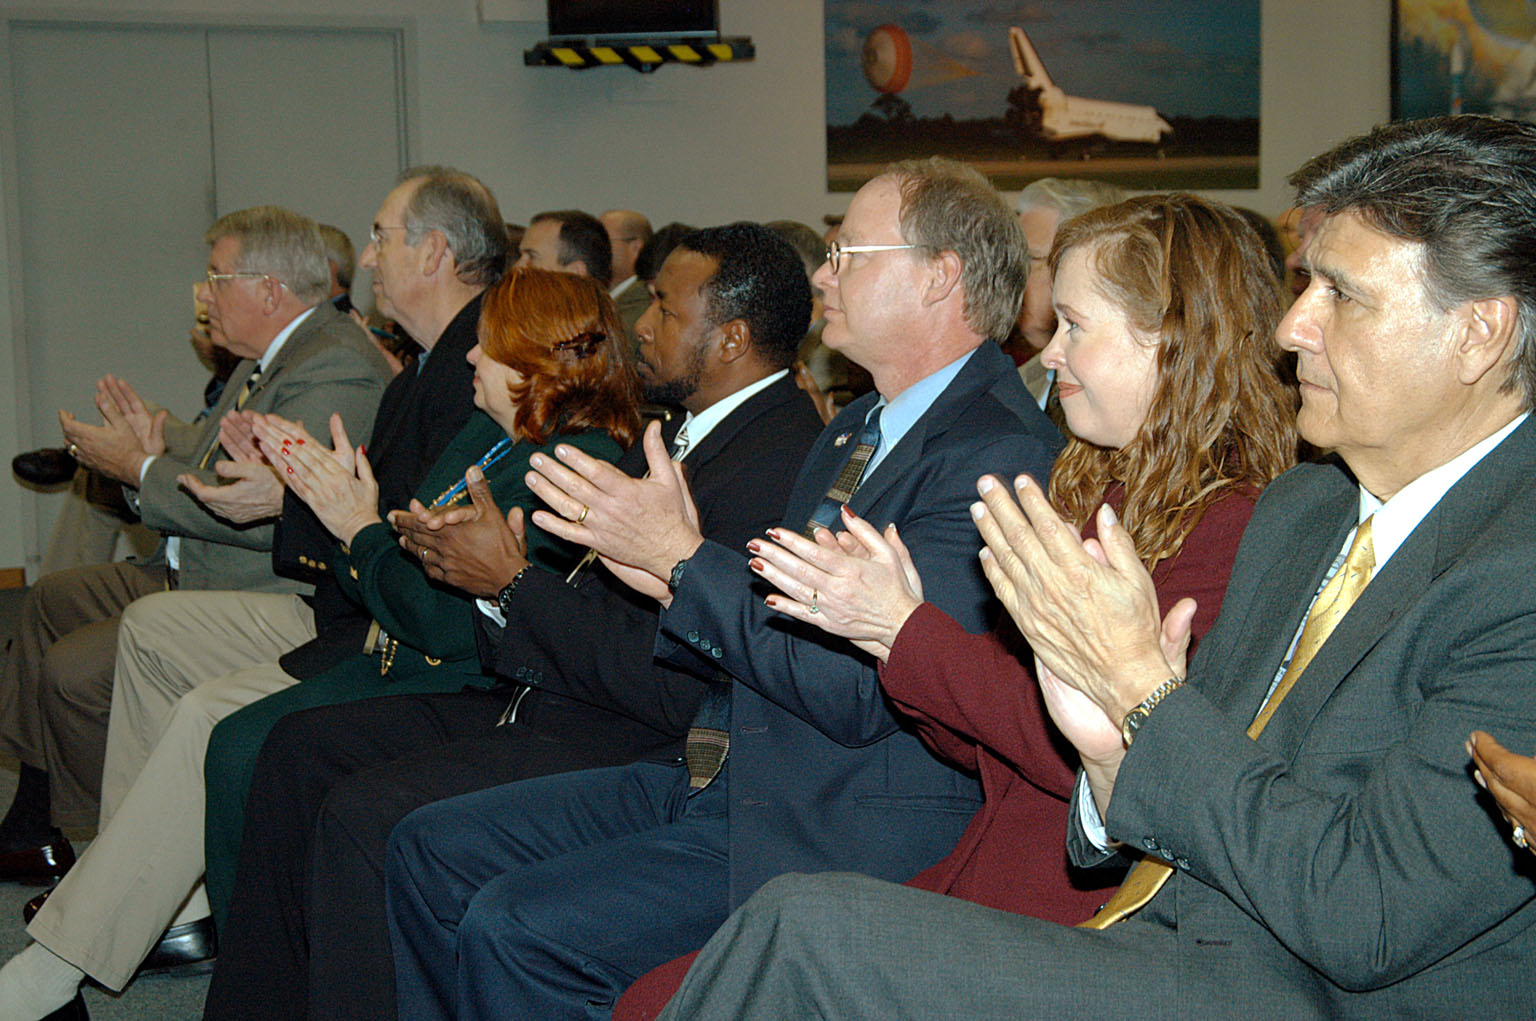 KENNEDY SPACE CENTER, FLA. -- In the KSC television studio, KSC management and other employees applaud President George W. Bush, who addressed the public and an assembly of government officials at NASA Headquarters as he outlined a new focus and vision for the space agency. Seated in the front row, left to right, are Bill Pickavance vice president and associate program manager of Florida Operations, United Space Alliance (USA) ; Howard DeCastro, vice president and Space Shuttle program manager, USA; Shannon Roberts, with External Affairs; Woodrow Whitlow, KSC deputy director; Bruce Buckingham, assistant to Dr. Whitlow; Lisa Malone, director of External Affairs; and Ken Aguilar, chief, Equal Opportunity office. The President stated his goals for NASA?s new mission: Completing the International Space Station, retiring the Space Shuttle orbiters, developing a new crew exploration vehicle, and returning to the moon and beyond within the next two decades. Pres. Bush was welcomed by NASA Administrator Sean O?Keefe and Expedition 8 Commander Michael Foale, who greeted him from the International Space Station. Members of the Washington, D.C., audience included astronauts Eileen Collins, Ed Lu and Michael Lopez-Alegria, and former astronaut Gene Cernan.